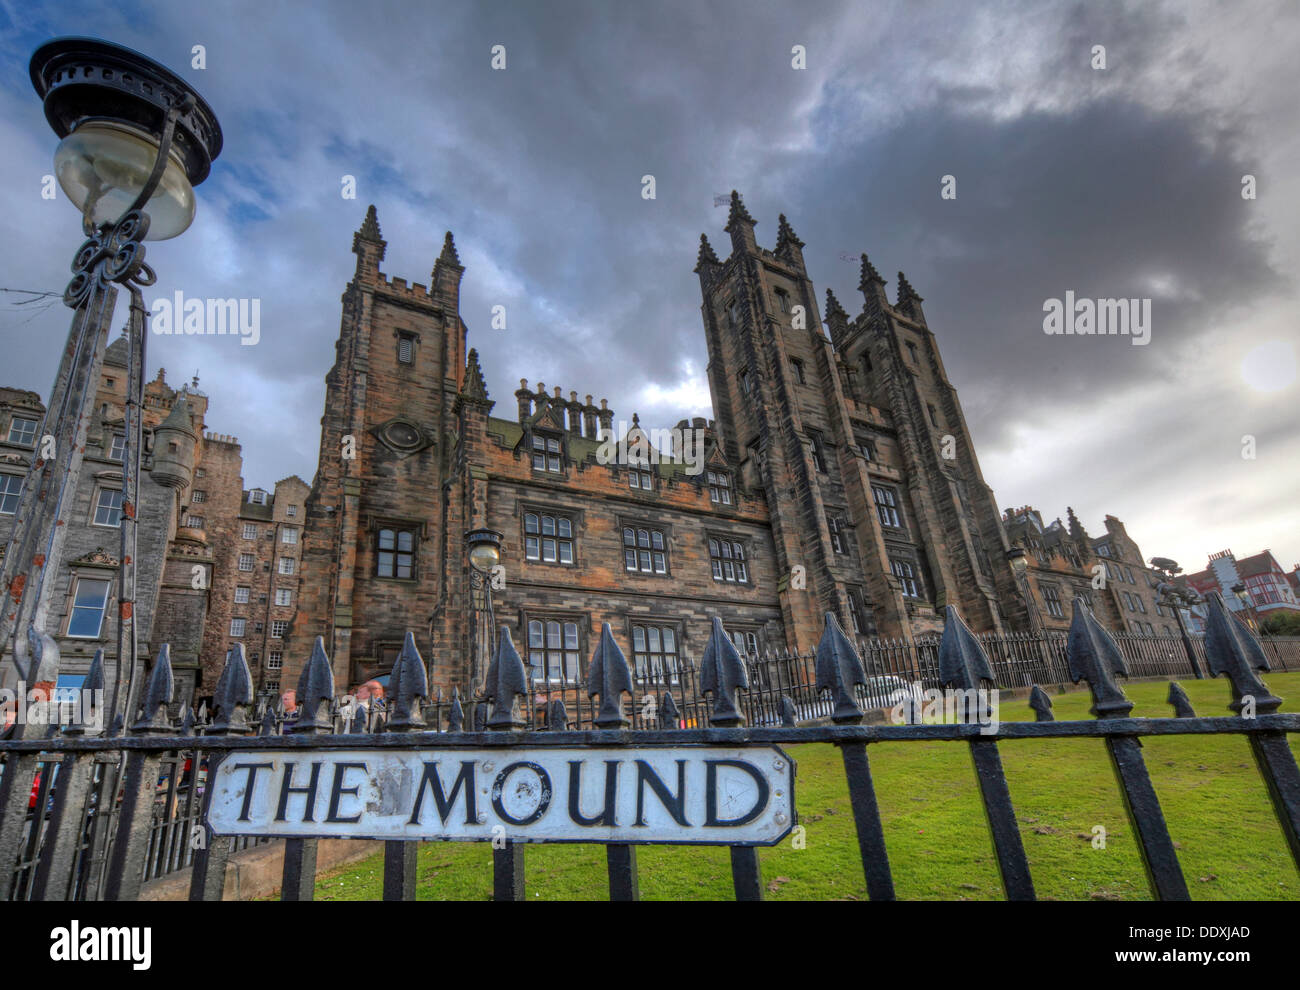 Scotland,UK,GB,great,Britain,grass,hill,hillock,grassed,lawn,old,town,oldtown,wide,angle,shot,museum,on,the,artificial,drained,Nor,Loch,which,forms,todays,Princes,Street,Gardens,construction,of,the,Earthen,summer,2013,sunny,National,Gallery,of,the,Royal,Scottish,Academy,spires,gotonysmith,New,College,General,Assembly,Hall,of,the,Church,of,Churchofscotland,iconic,Scottish,independence,independent,indapendance,cloudy,sky,skies,moody,dark,contrast,contrasty,Tour,tourist,tourism,tourist,attraction,Scotland,Capital,City,Scots,Scottish,icon,iconic,@Hotpixuk,HotpixUk,Buy Pictures of,Buy Images Of,Tourist Attraction,city Centre